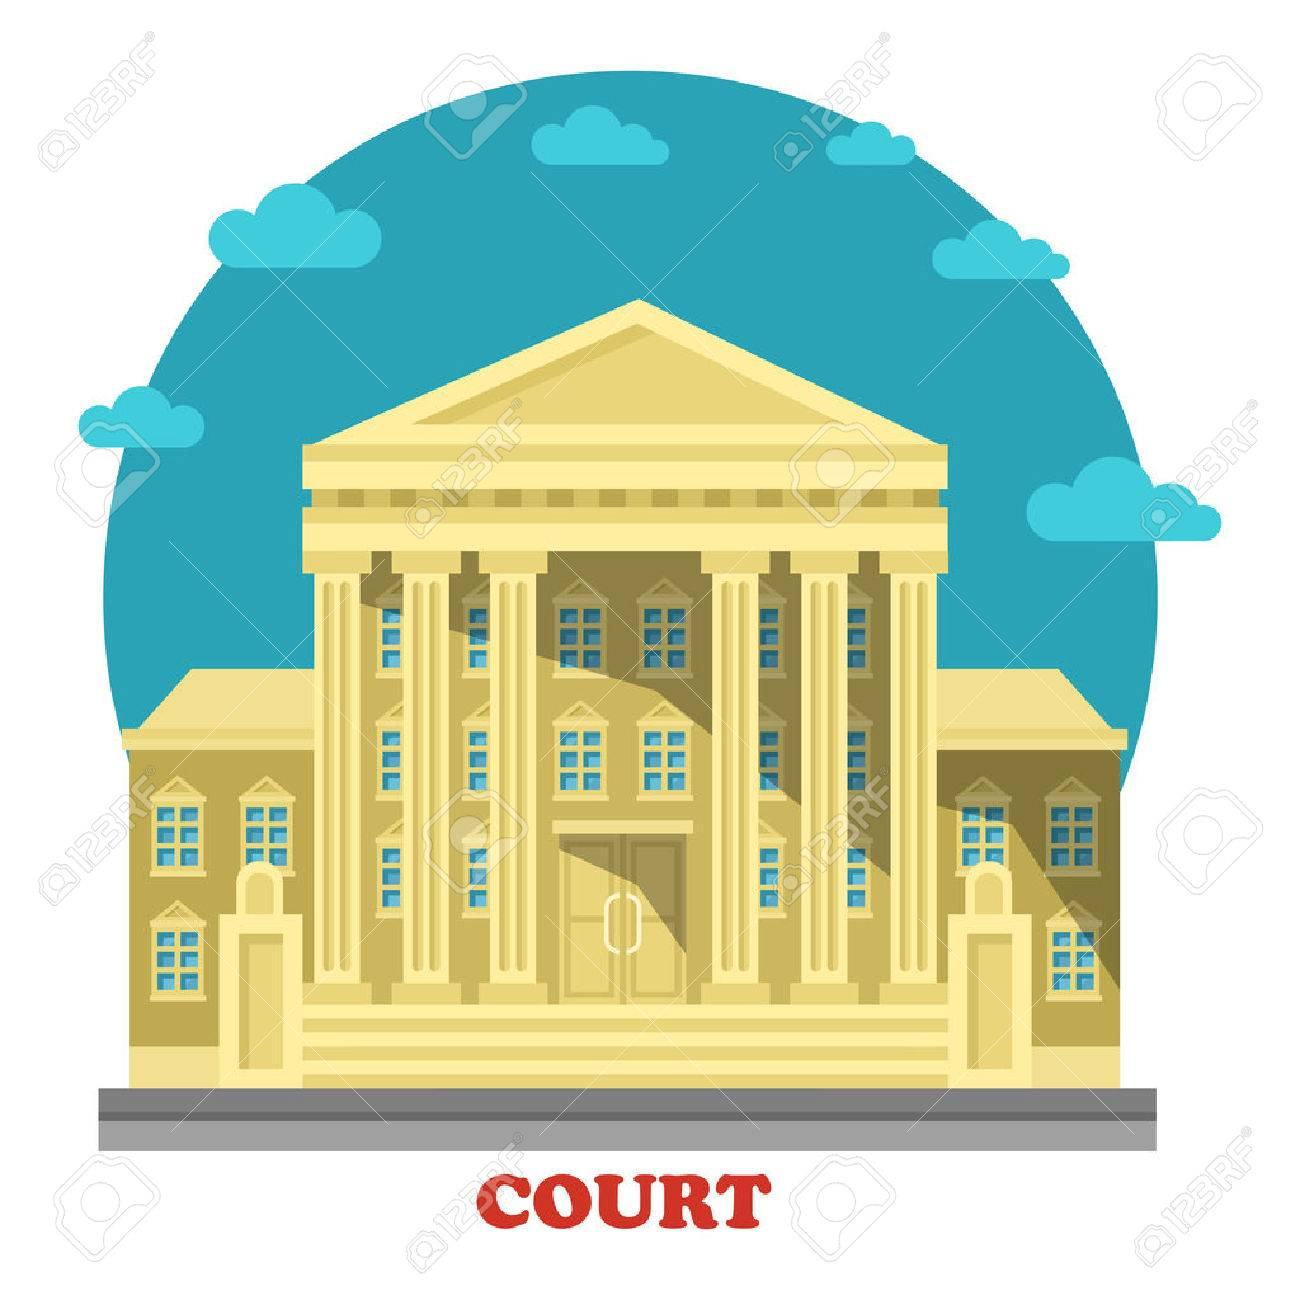 Court or tribunal, courthouse entrance exterior view. Building for justice and civil or common, administrative law, crime punishment and trials. Can be used for government or architecture theme - 64323137